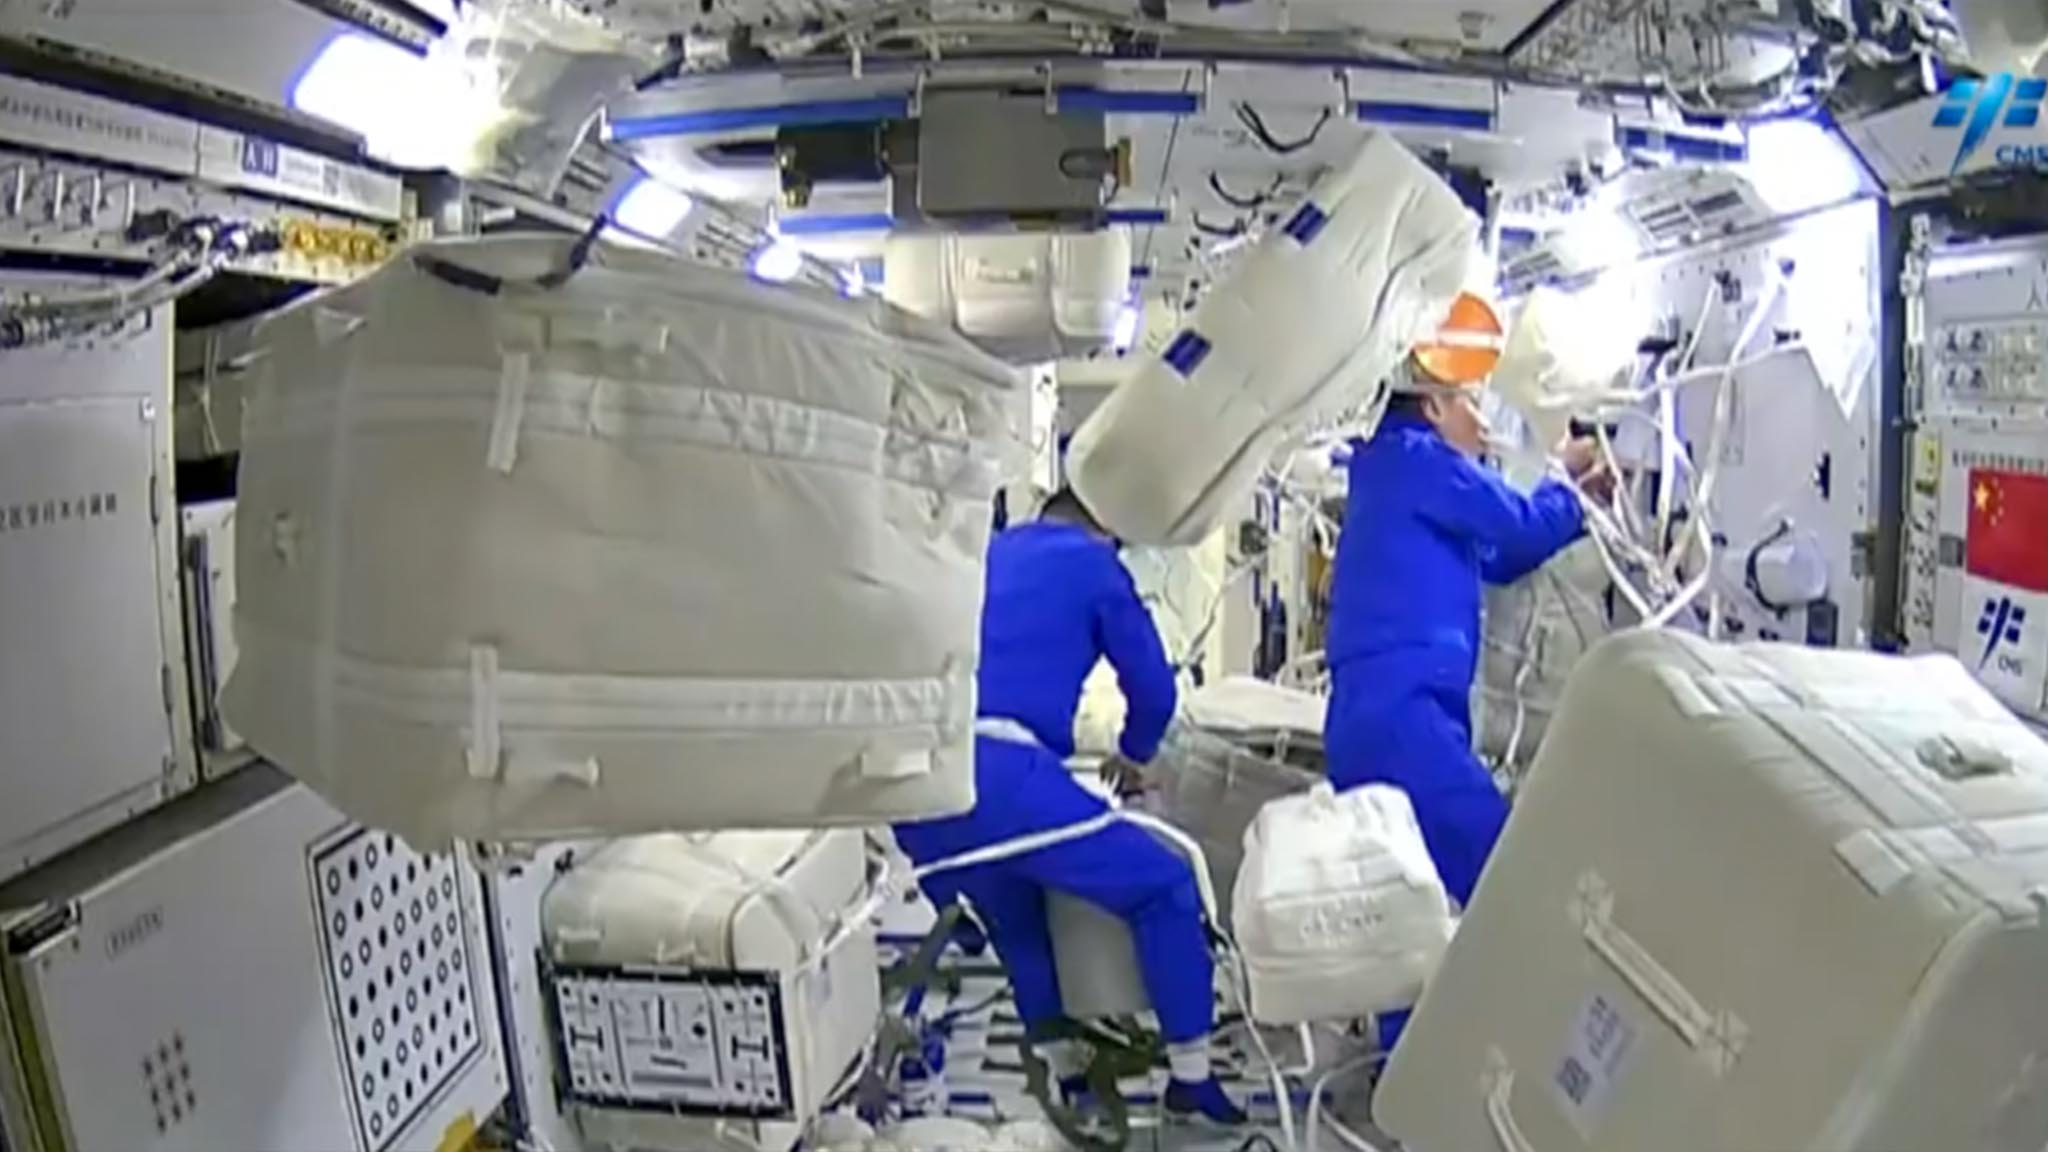 - 94b71b81b276412b8ab57637084cd861 - Space log: How do astronauts do laundry in space?